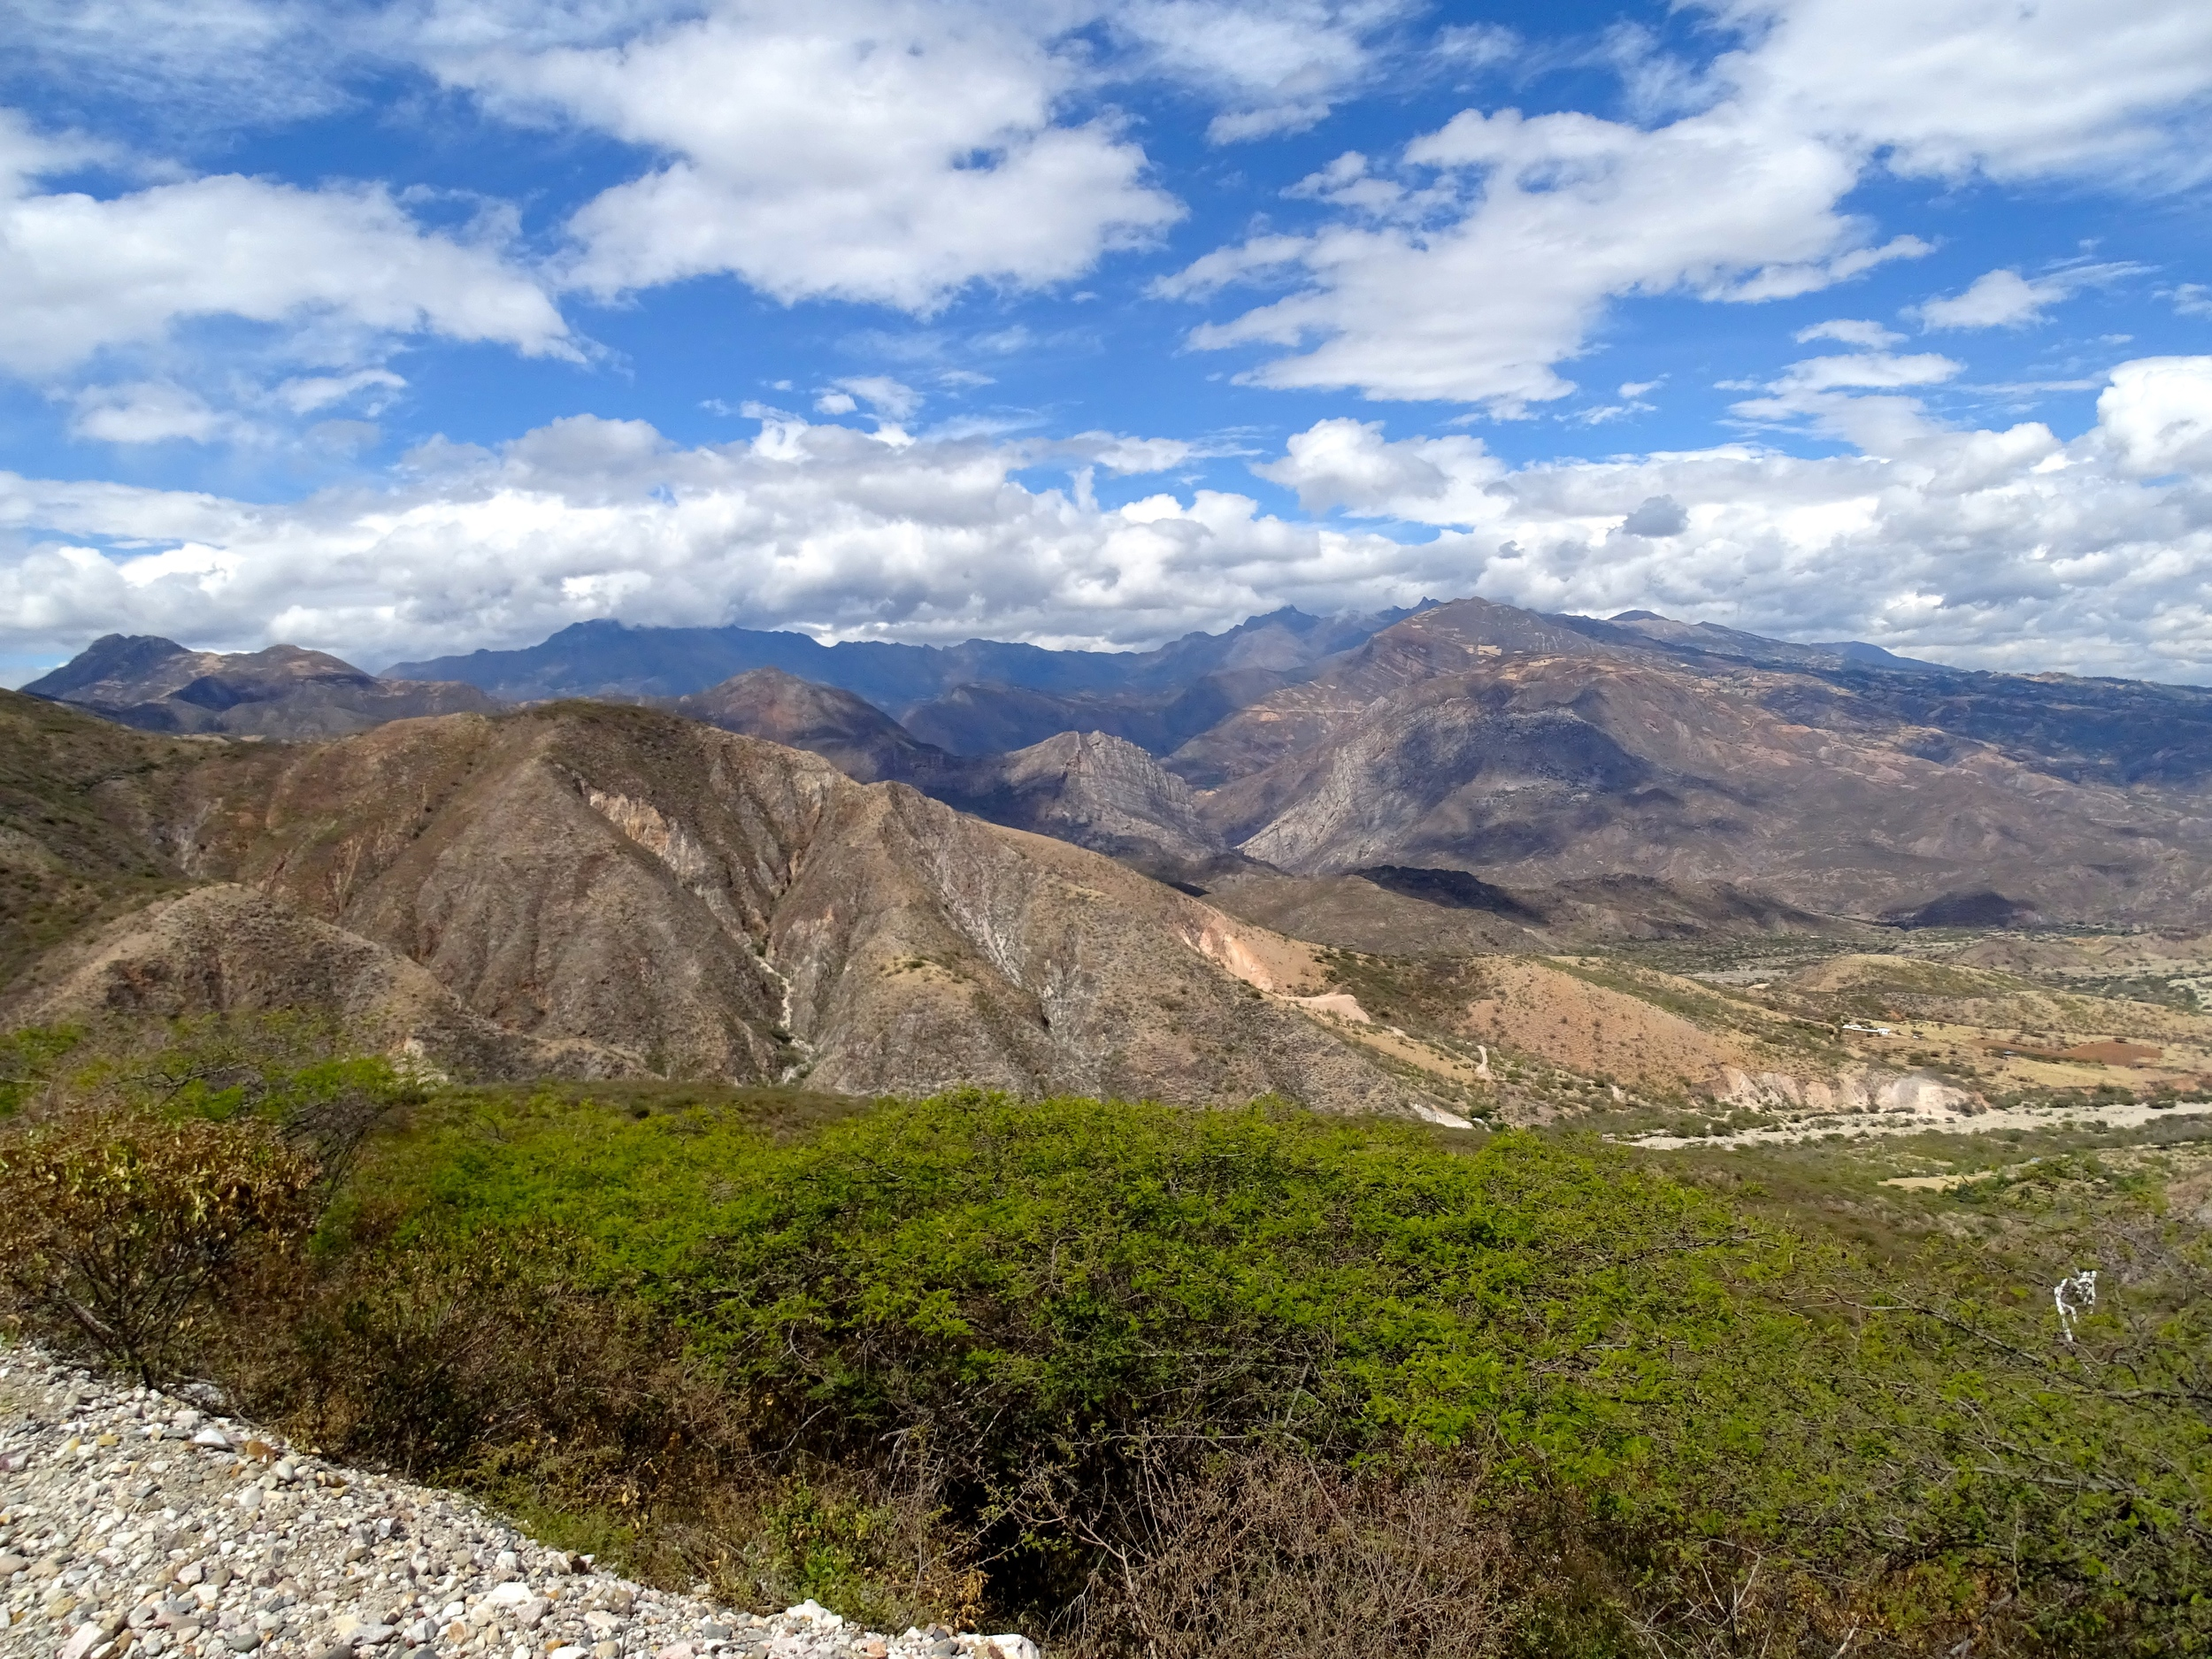 More magnificent Andes Mountains!